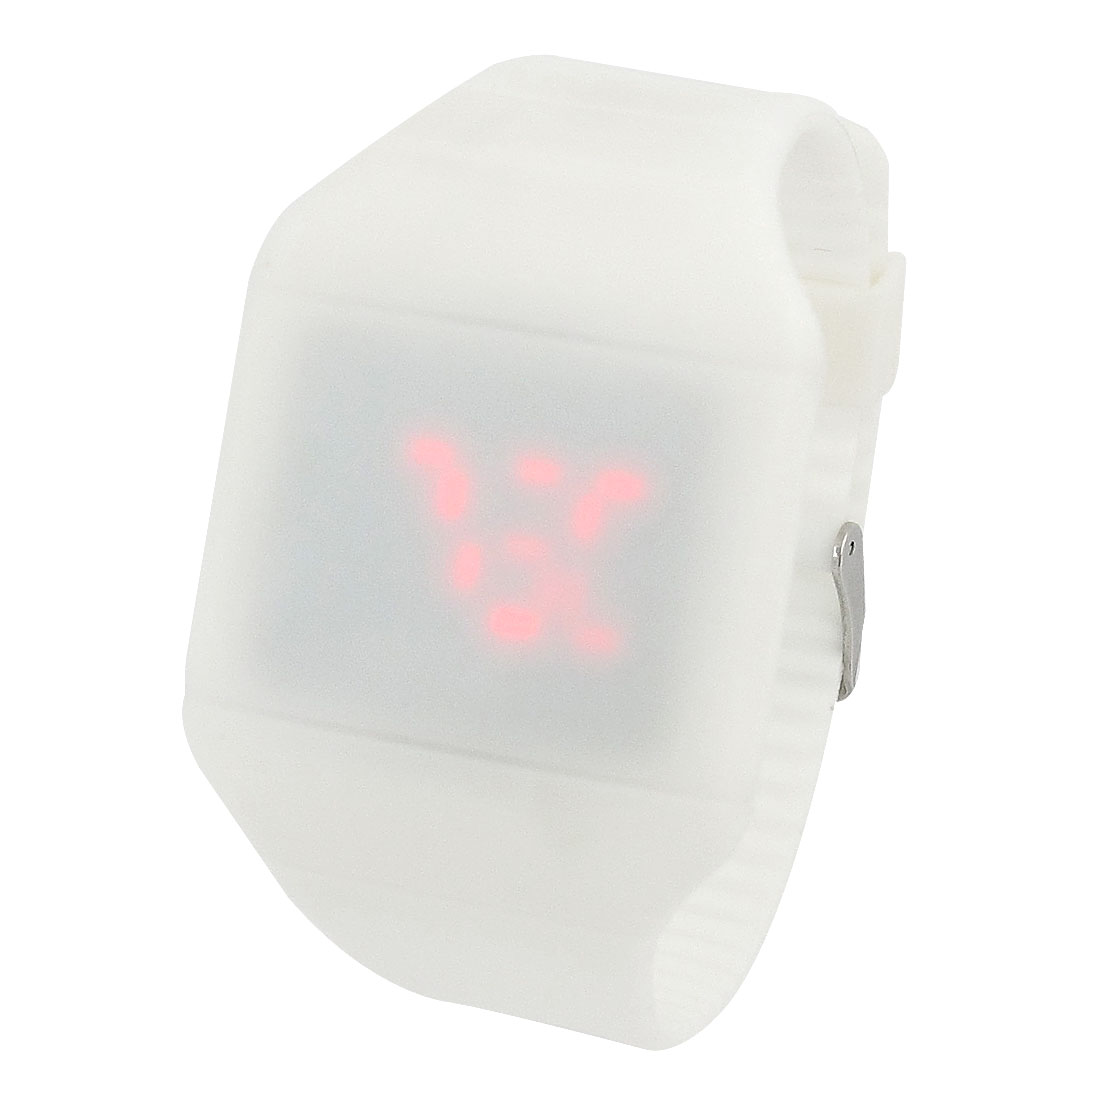 White Digital Display Water Resistant Touch Screen Red LED Watch for Woman